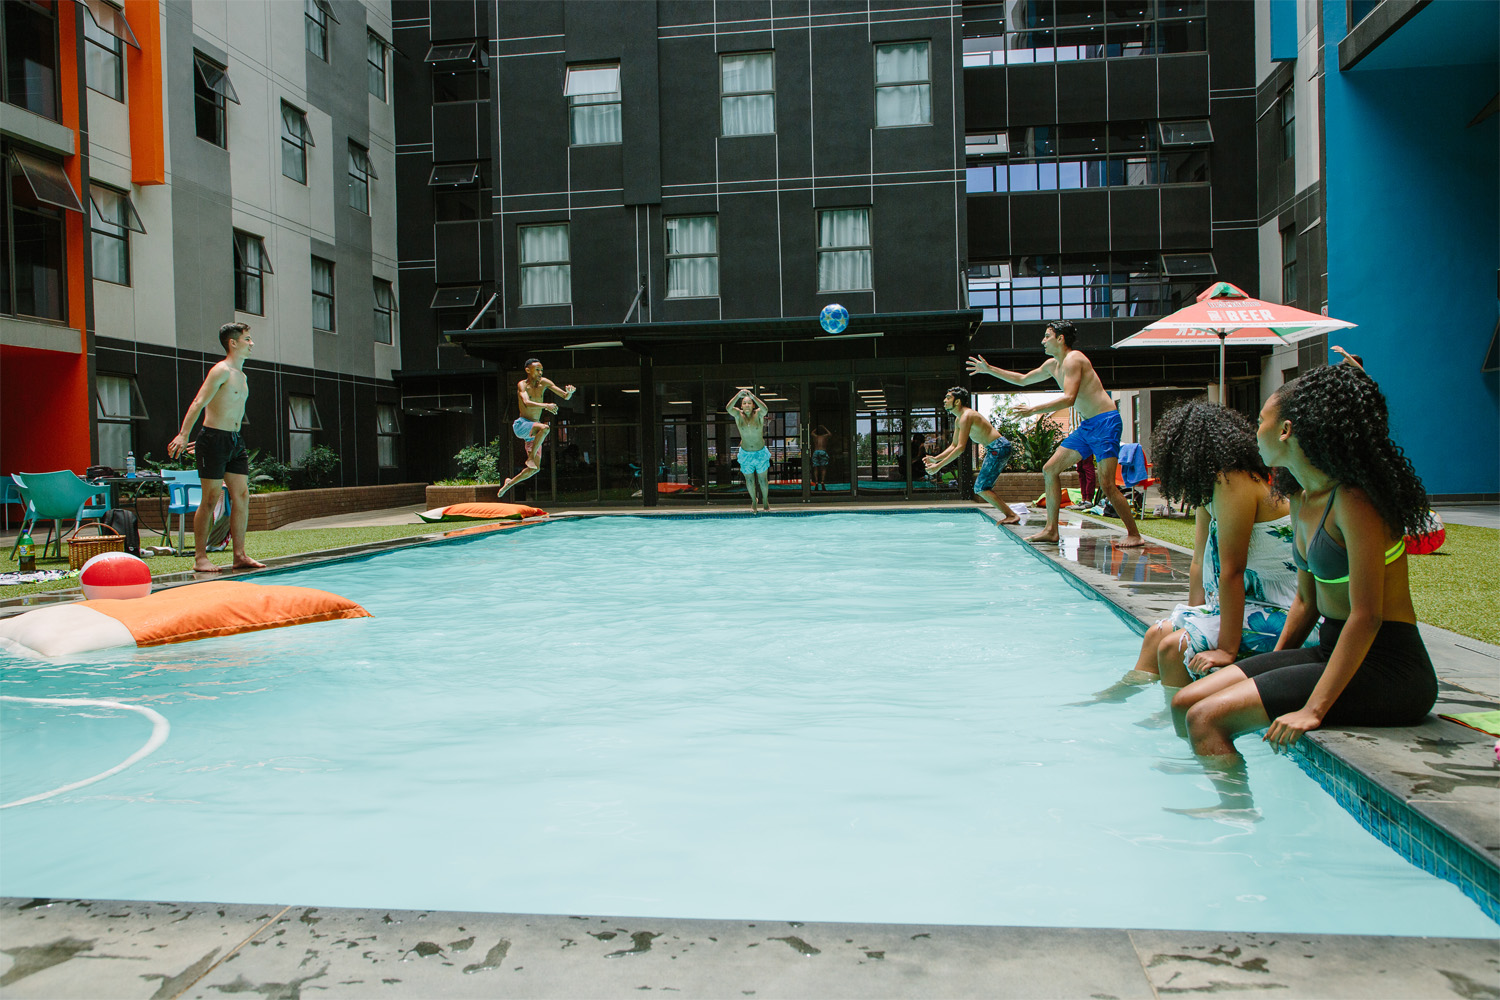 Hatfield_Square_Entertainment_Pool